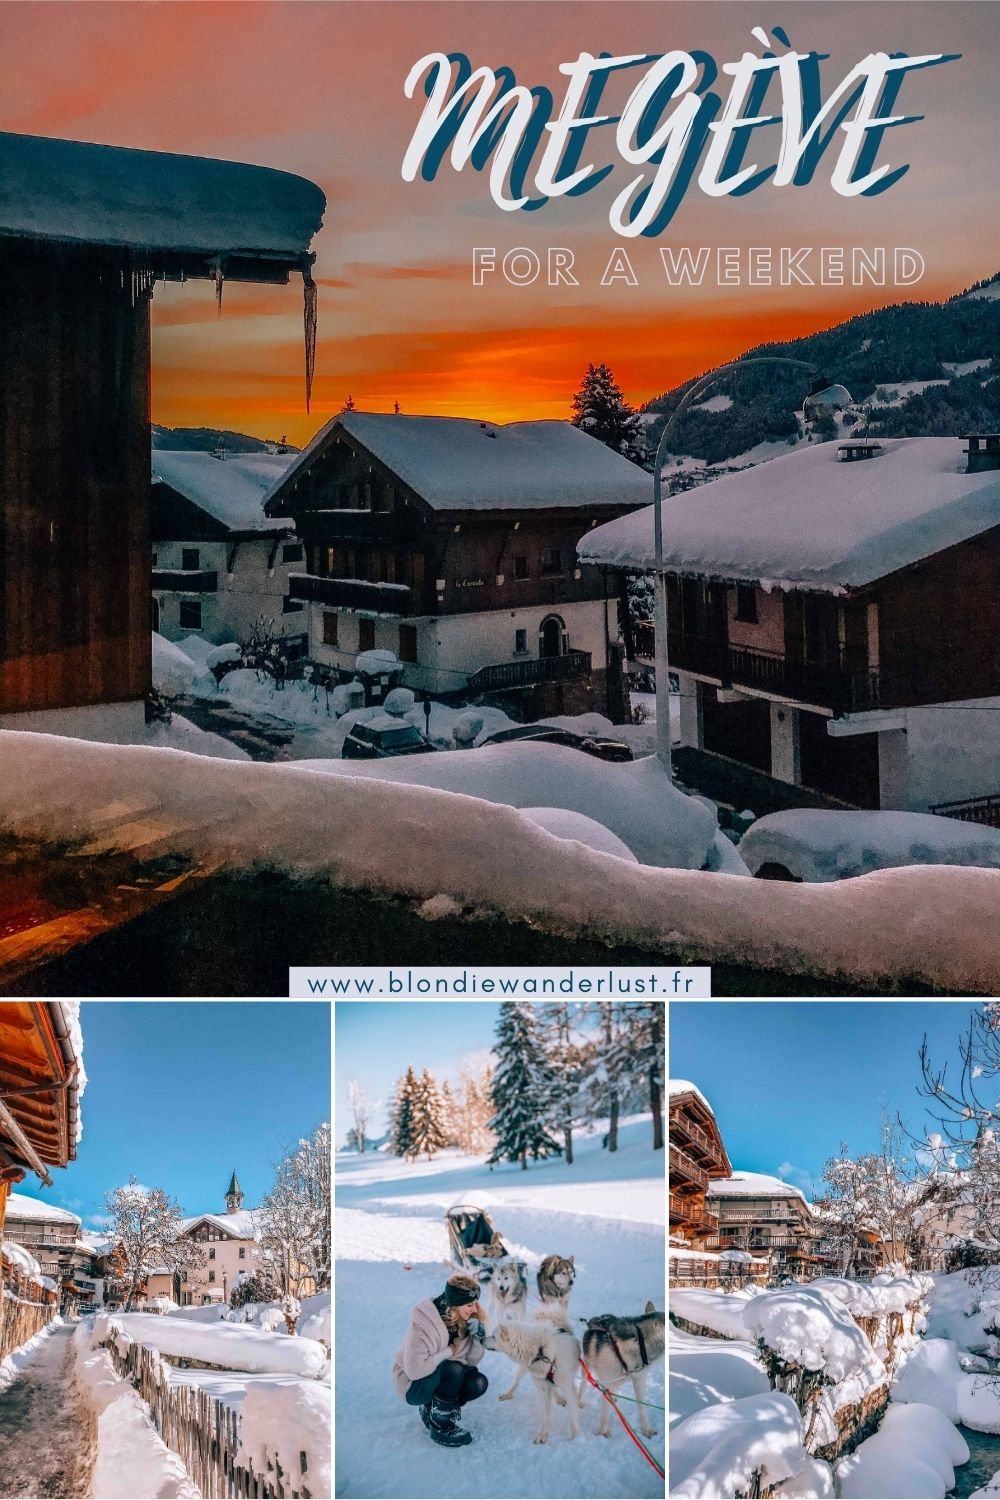 Megeve for a weekend